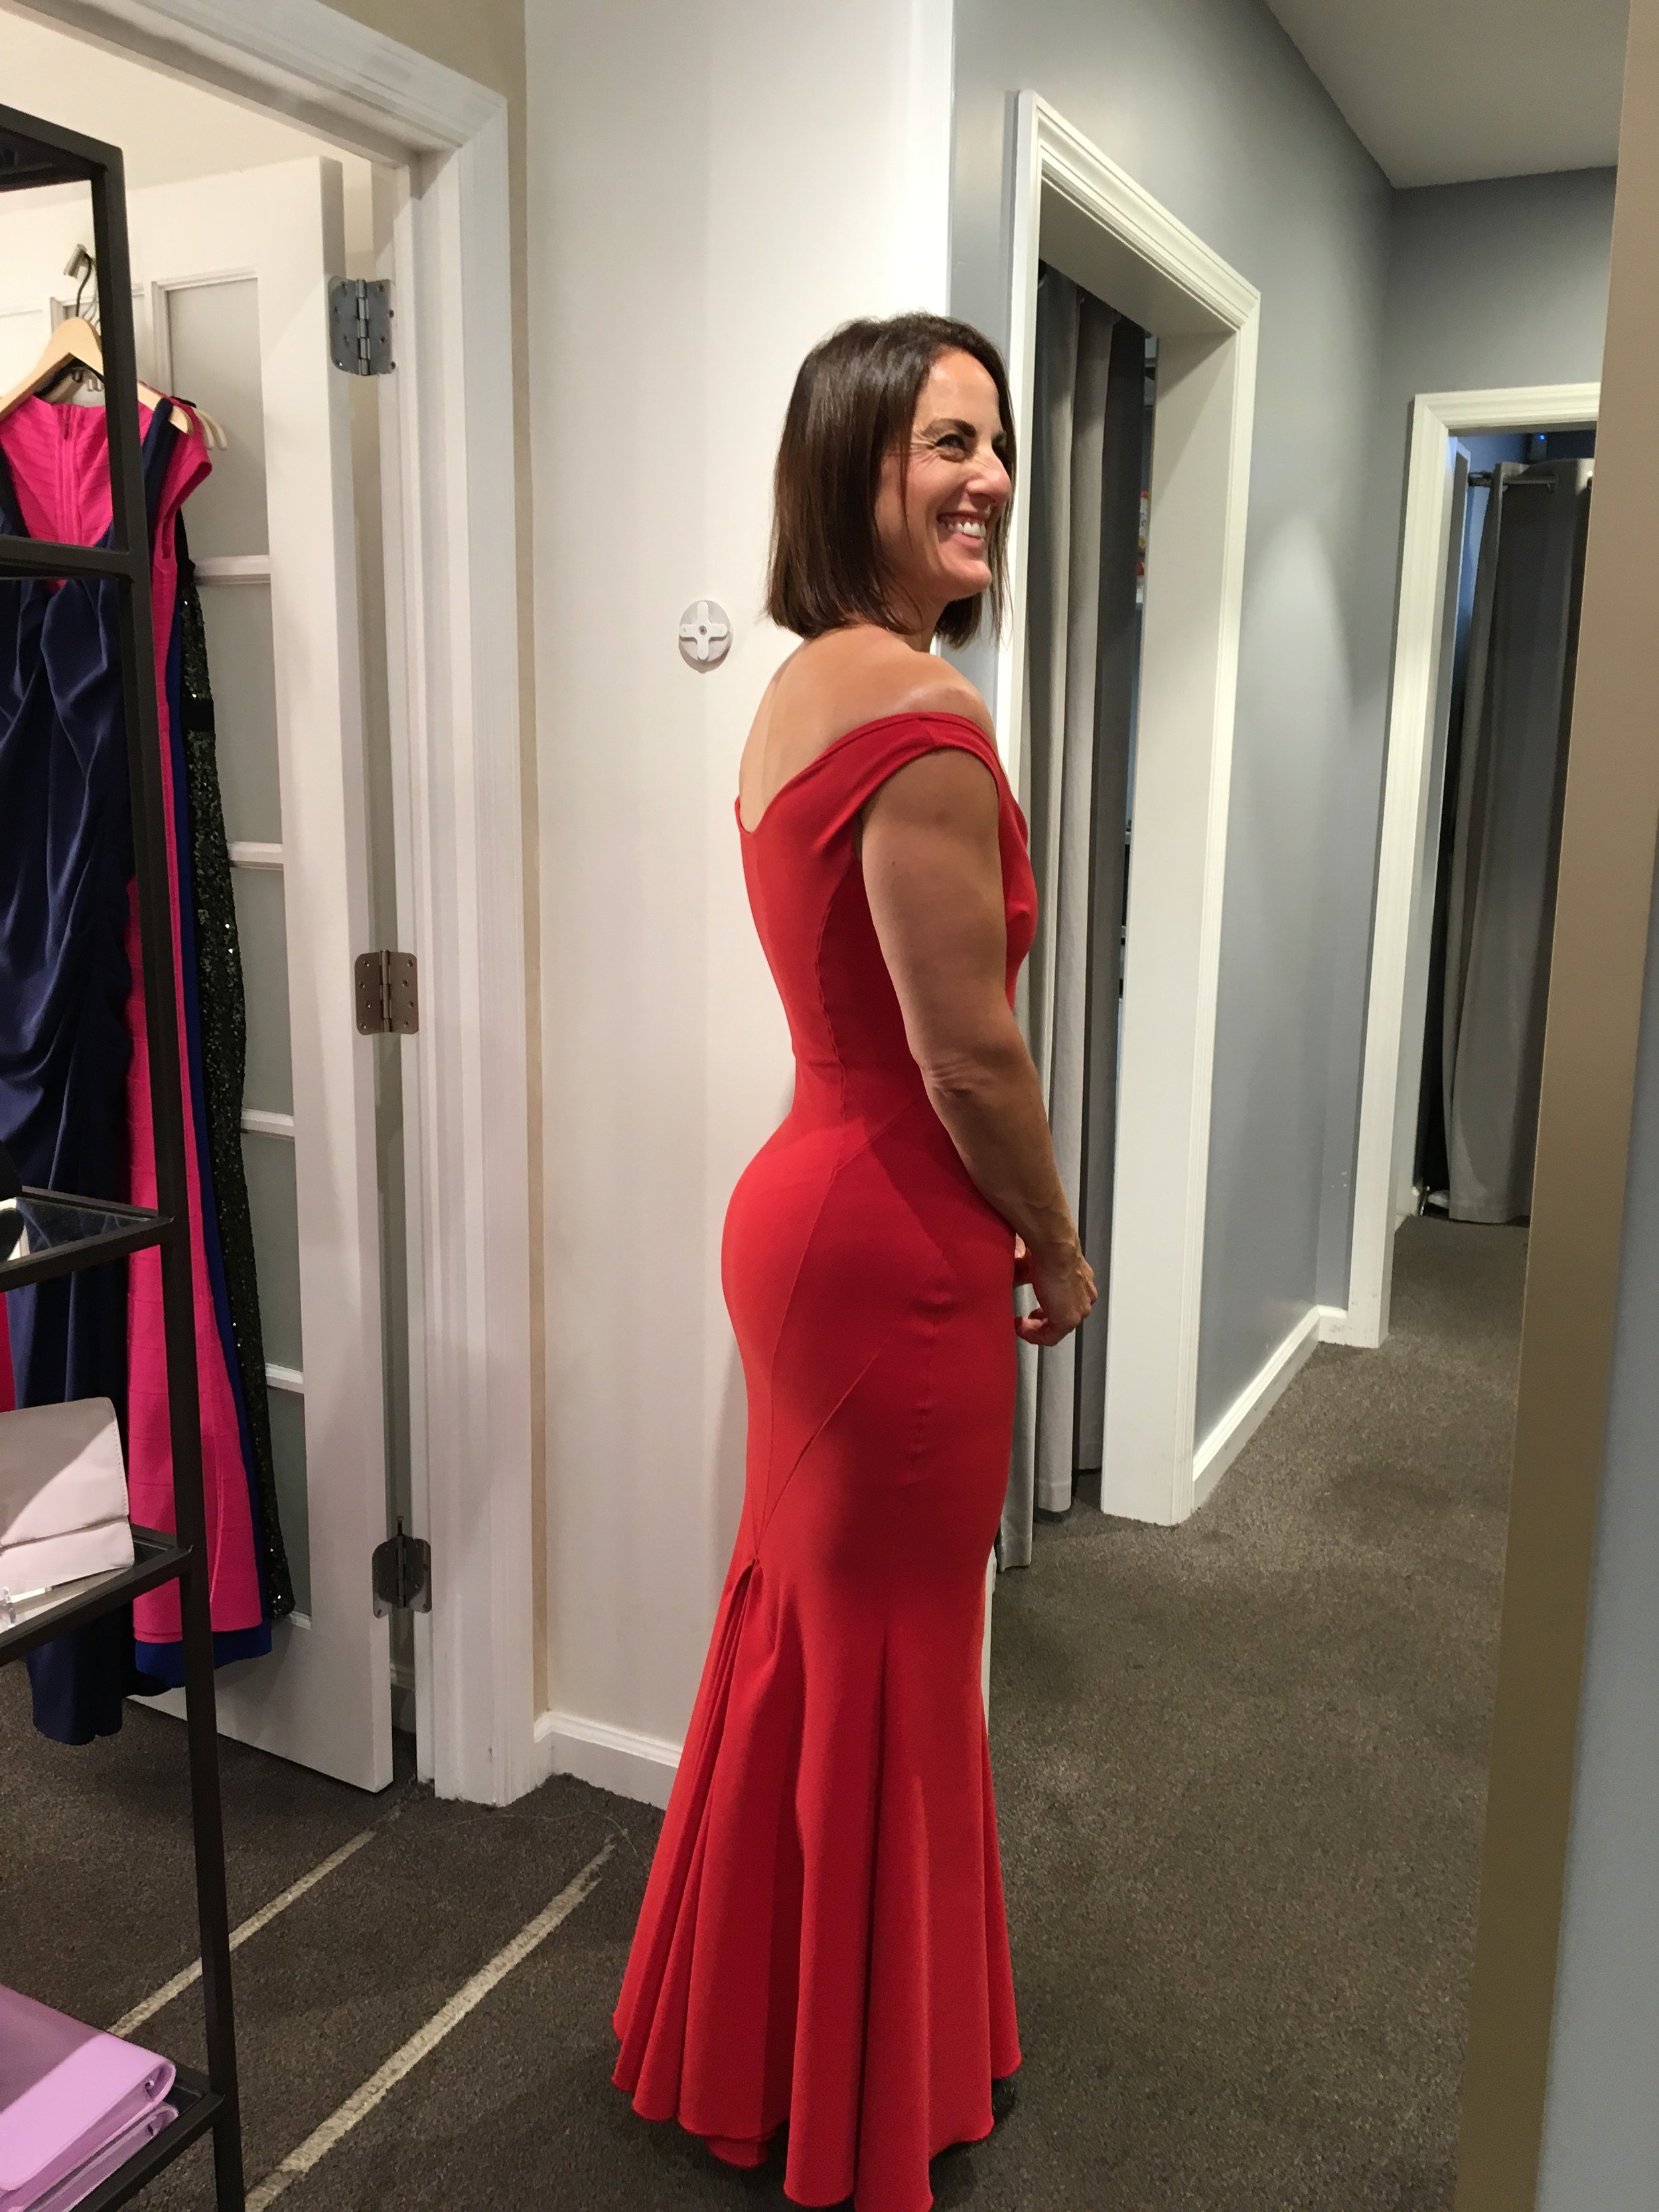 I do love a good red and, hello booty! But in the end this was too  Pretty Woman  and not enough  Sex in the City.